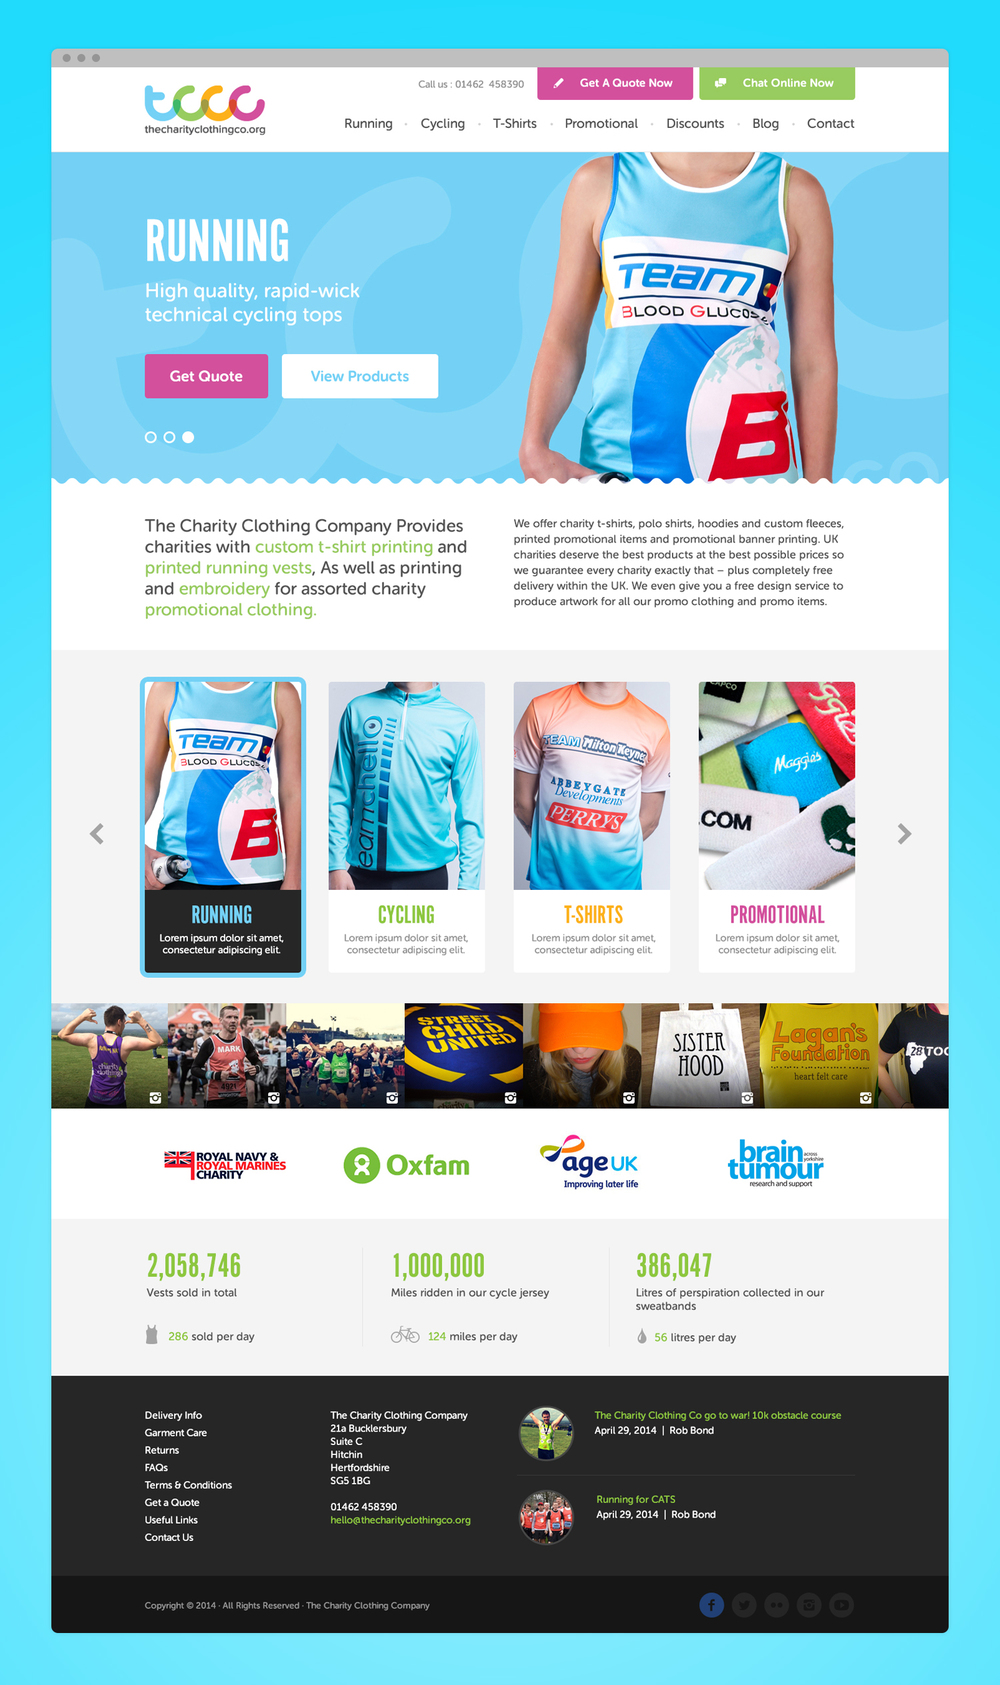 charityclothingcompany website design